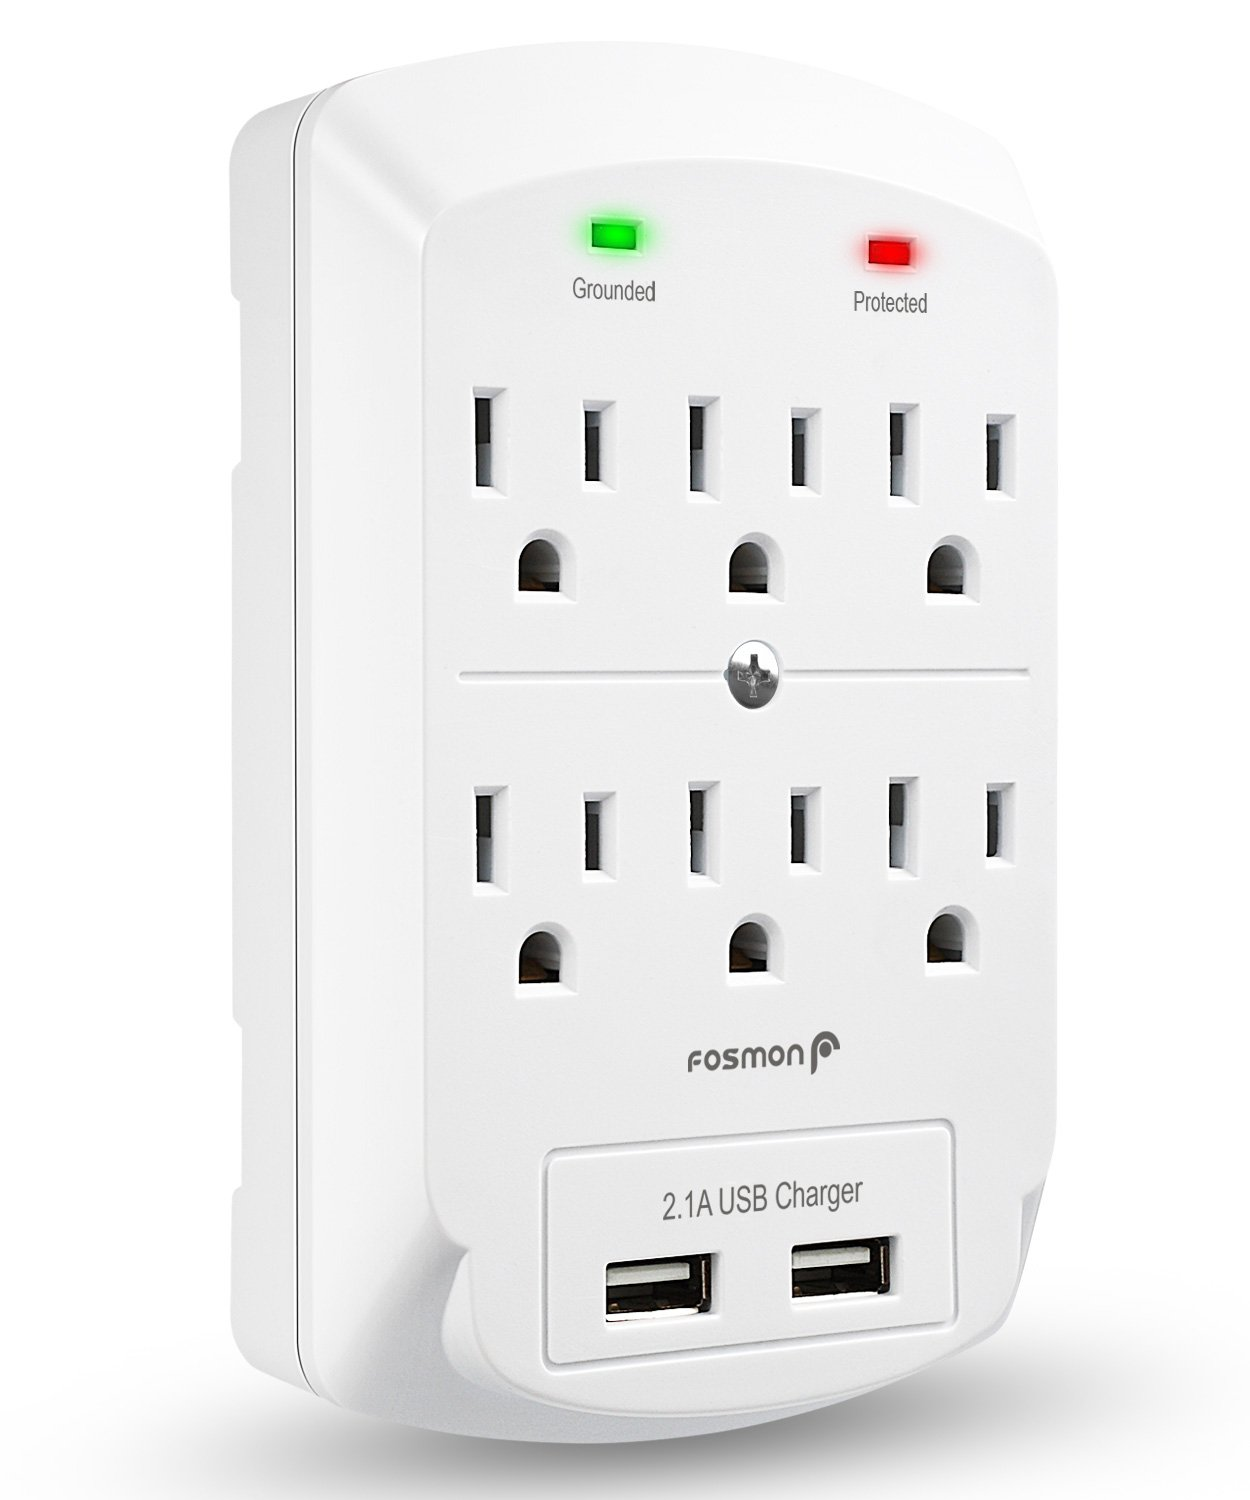 Fosmon 6 Outlet Wall Adapter Tap with USB Charger, 3-Prong Wall Mount Outlet Surge Protector, 1875 Watts Indoor 2 Dual 2.1A USB Port, ETL Listed - White